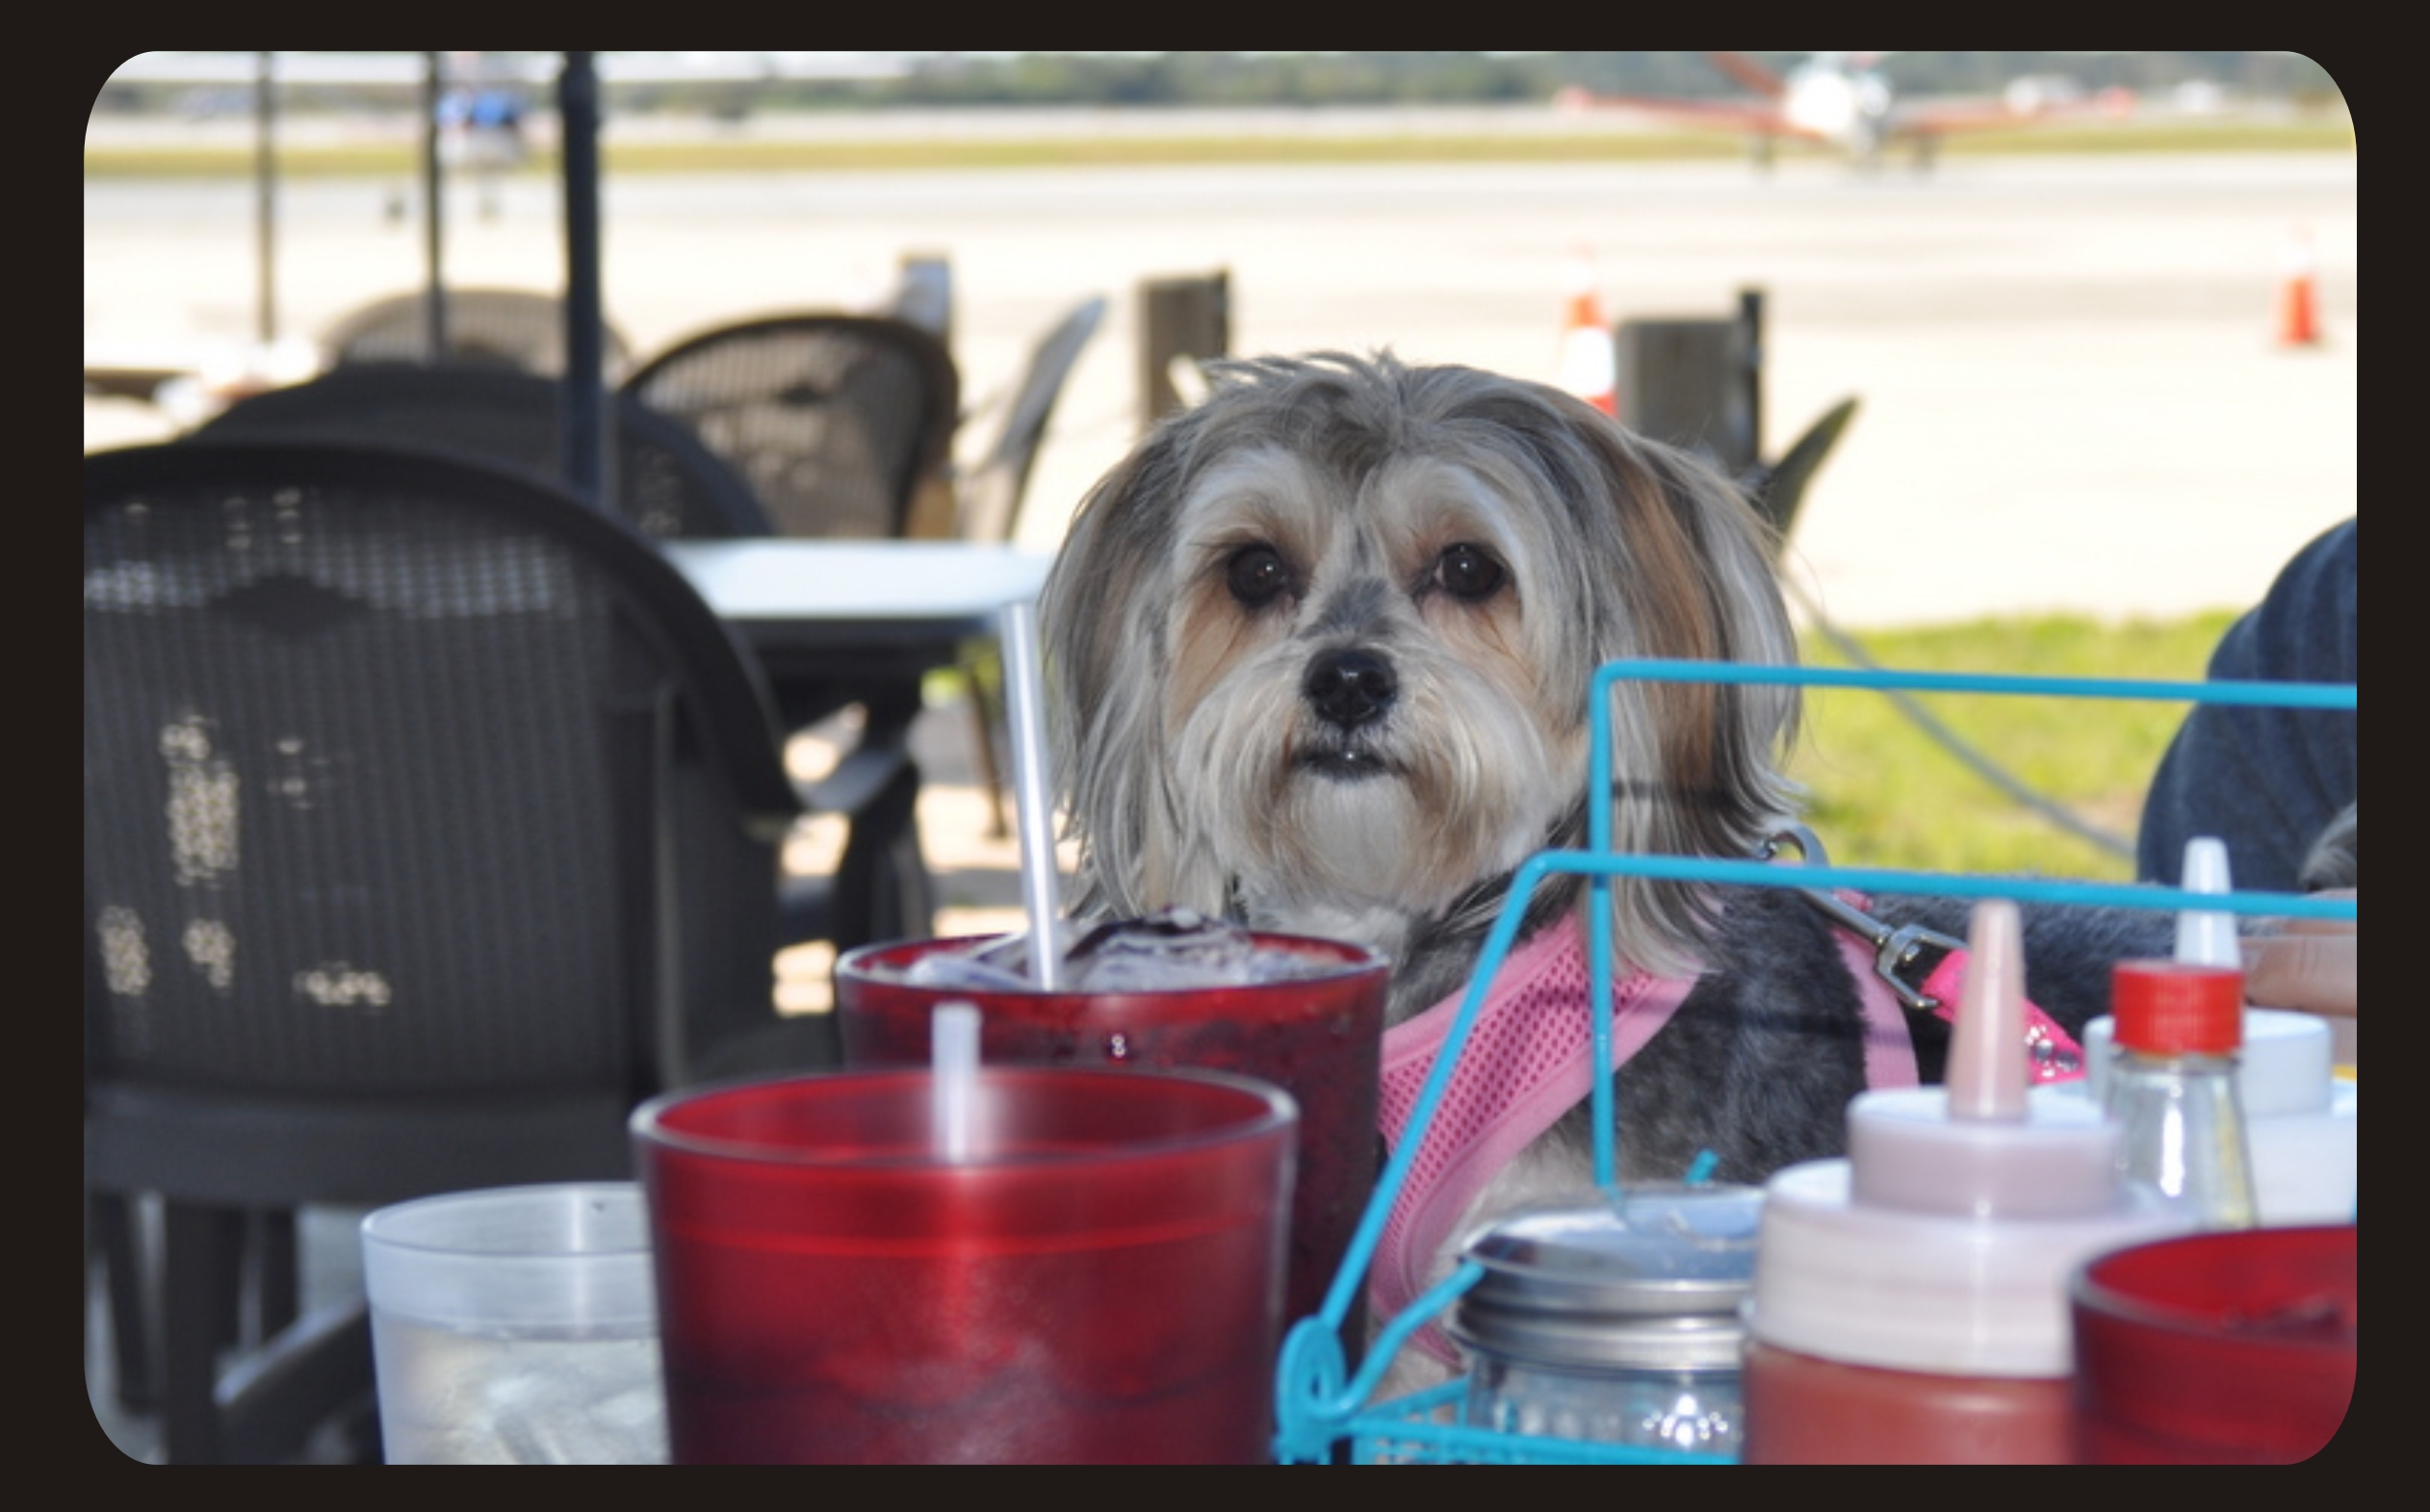 Dog Friendly Restaurant New Smyrna Beach